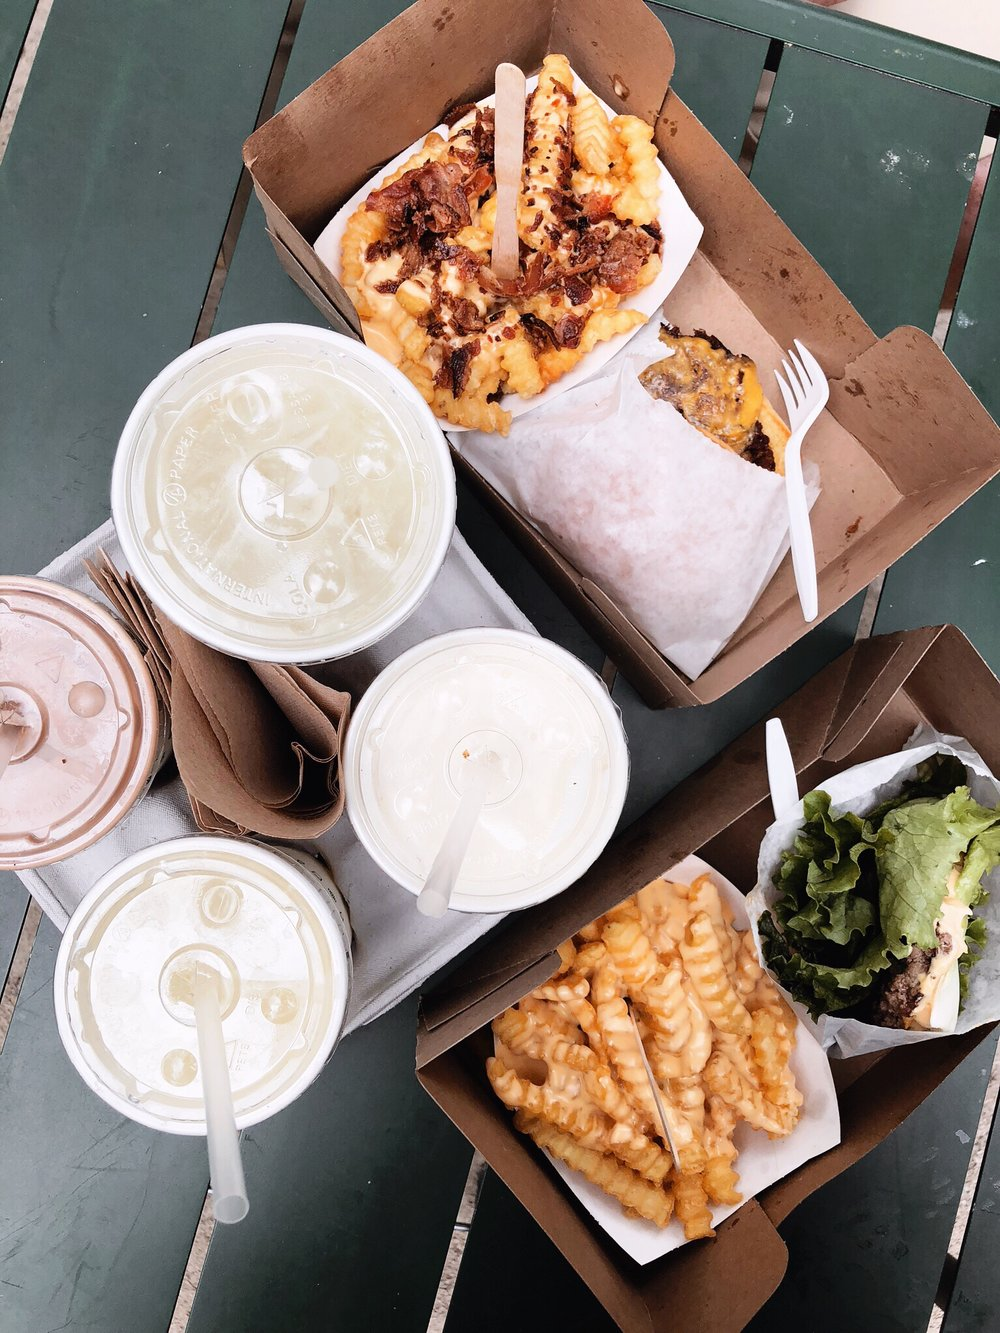 I'm sorry, is this Shake Shack image from when we were in NYC not helping anyone?!